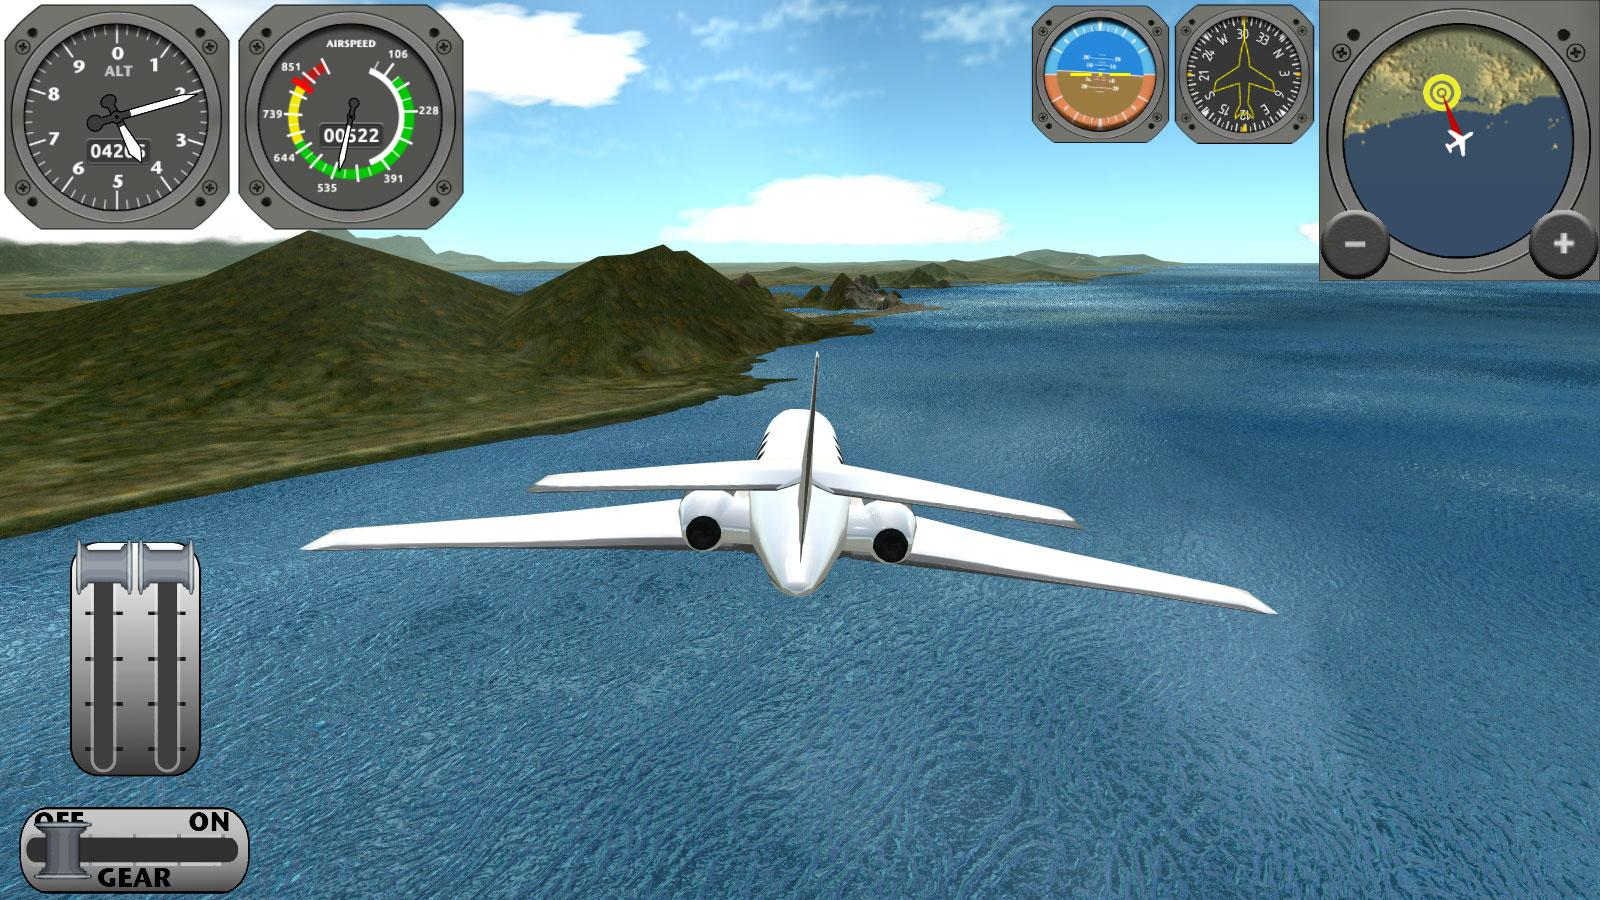 Flying Simulator Games Online Free Play | Games World